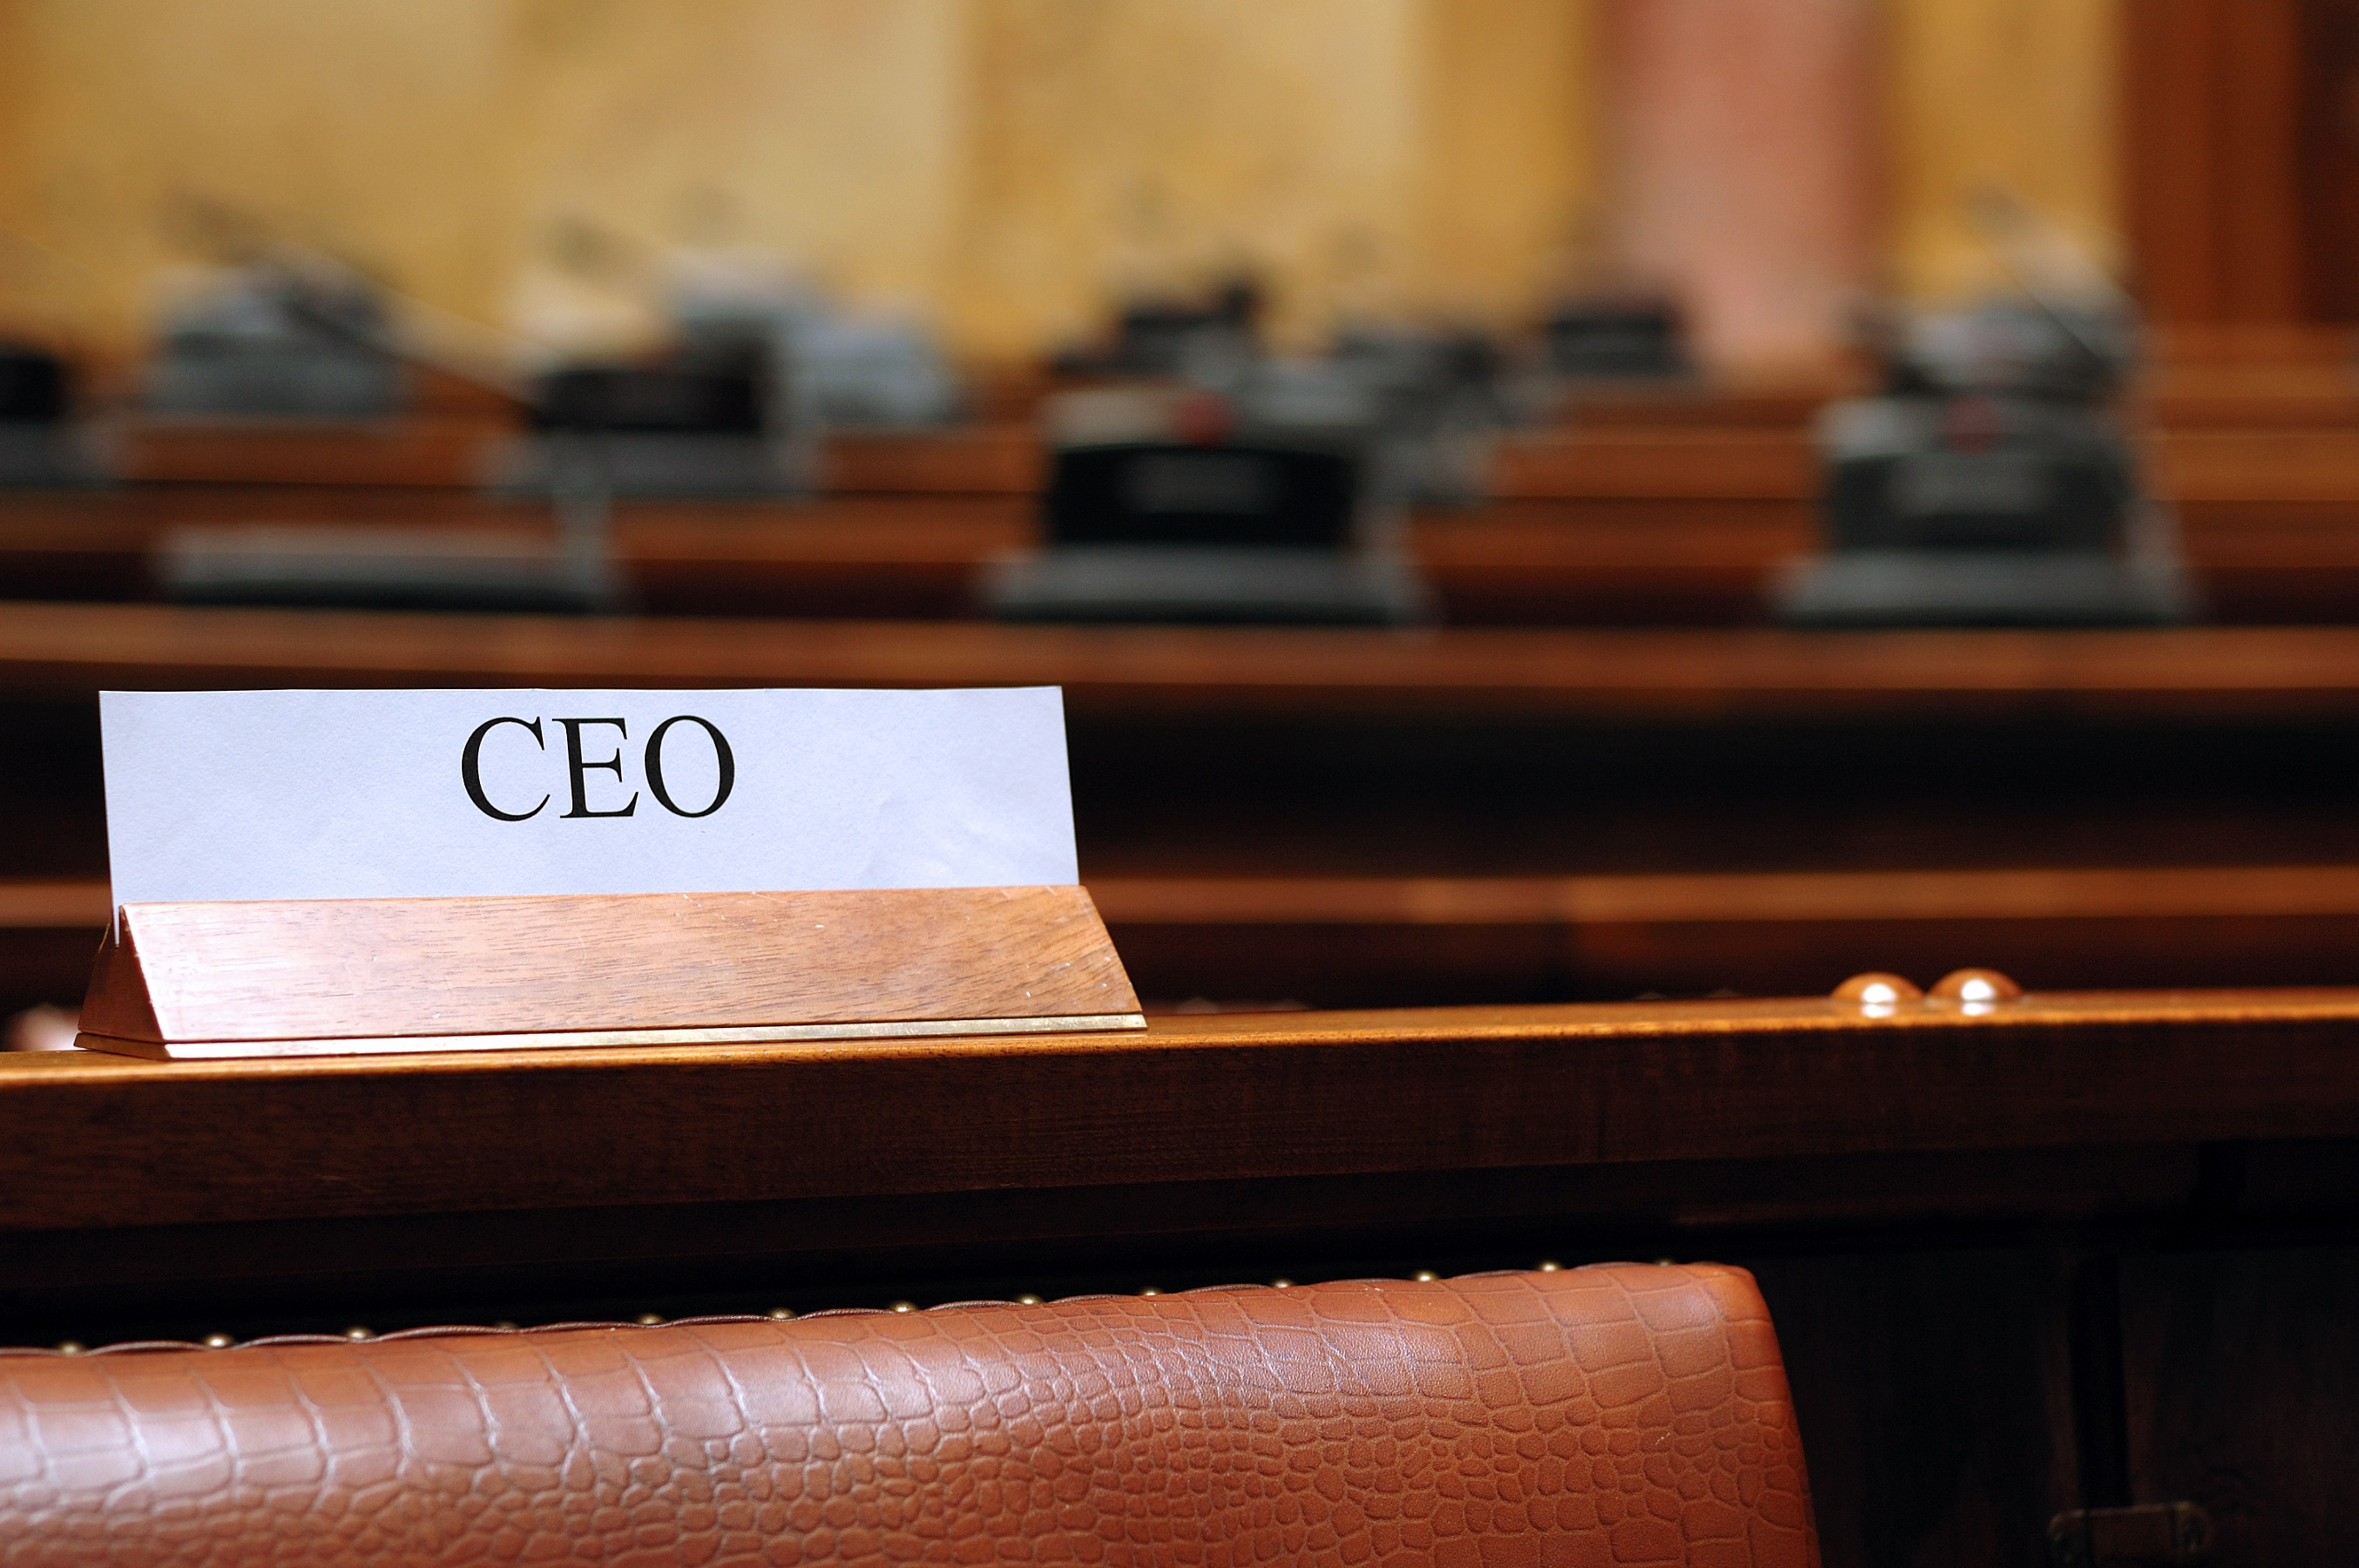 CEO stock image